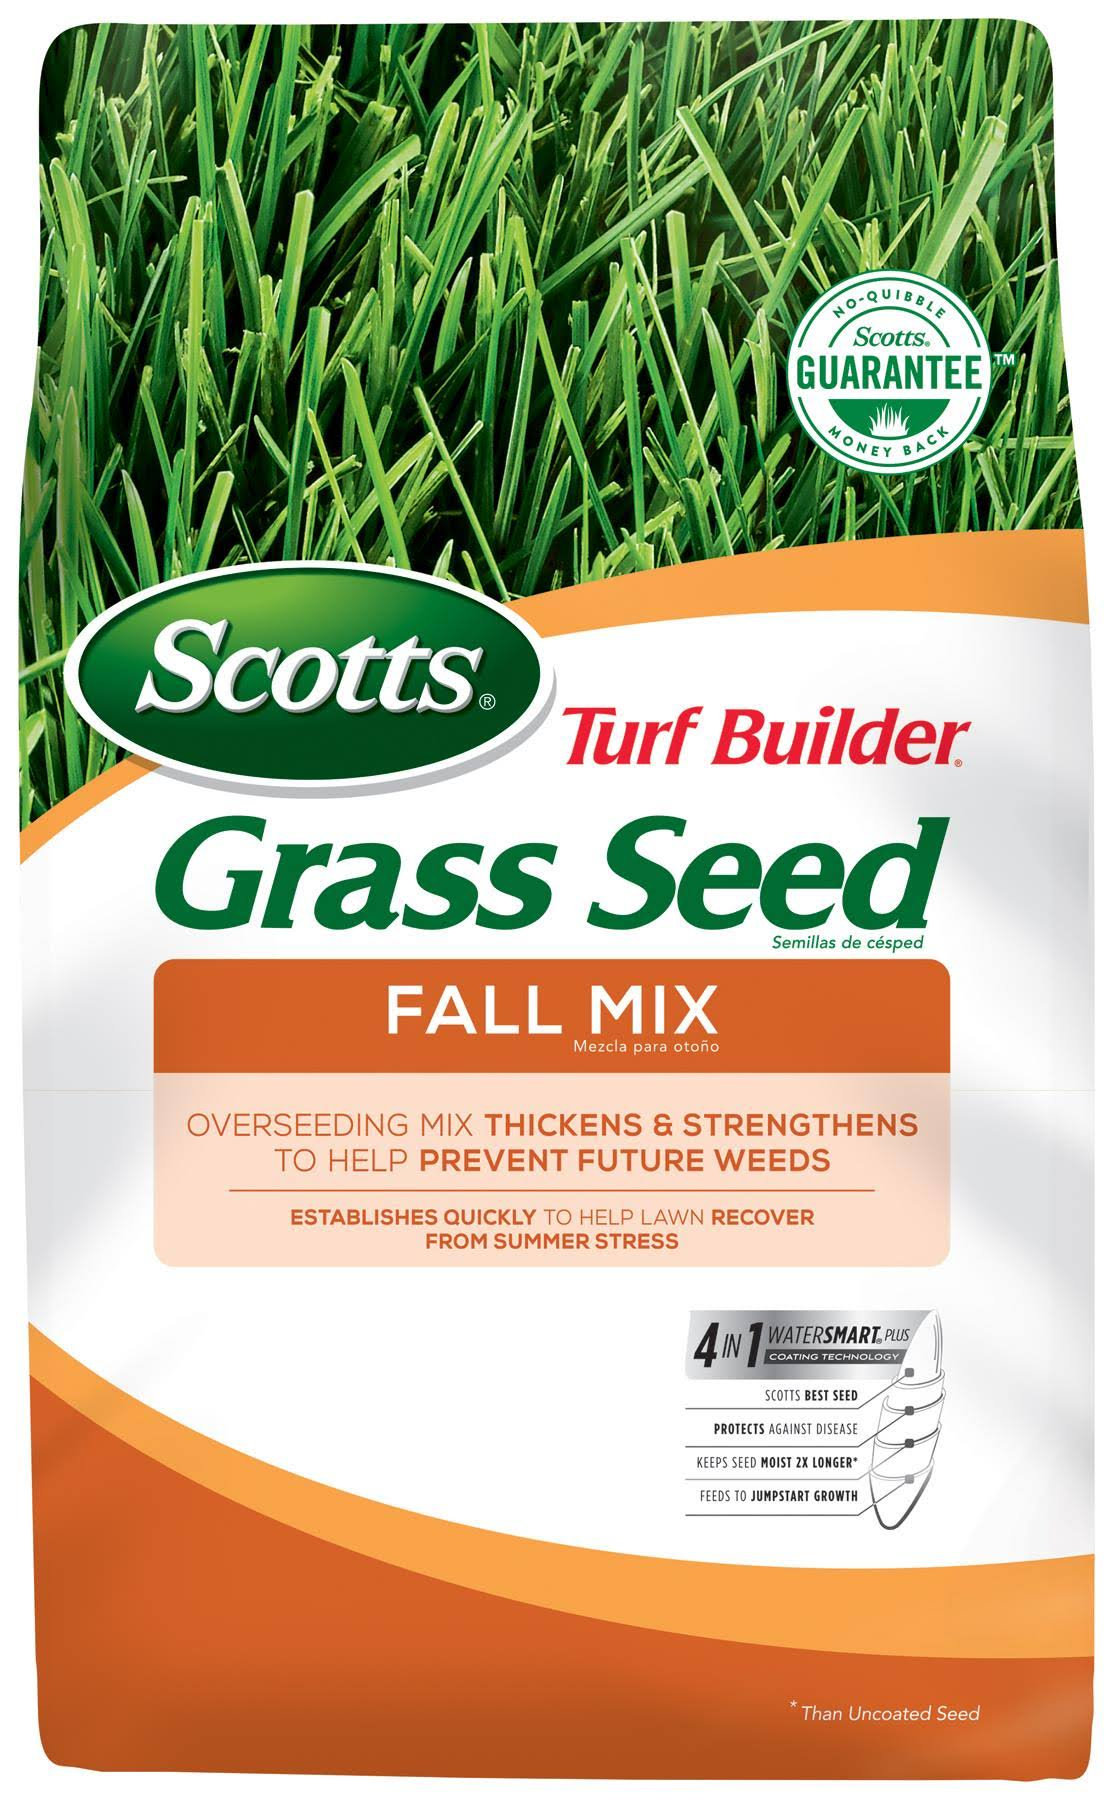 Scotts Turf Builder Fall Mix Grass Seed - 3lb